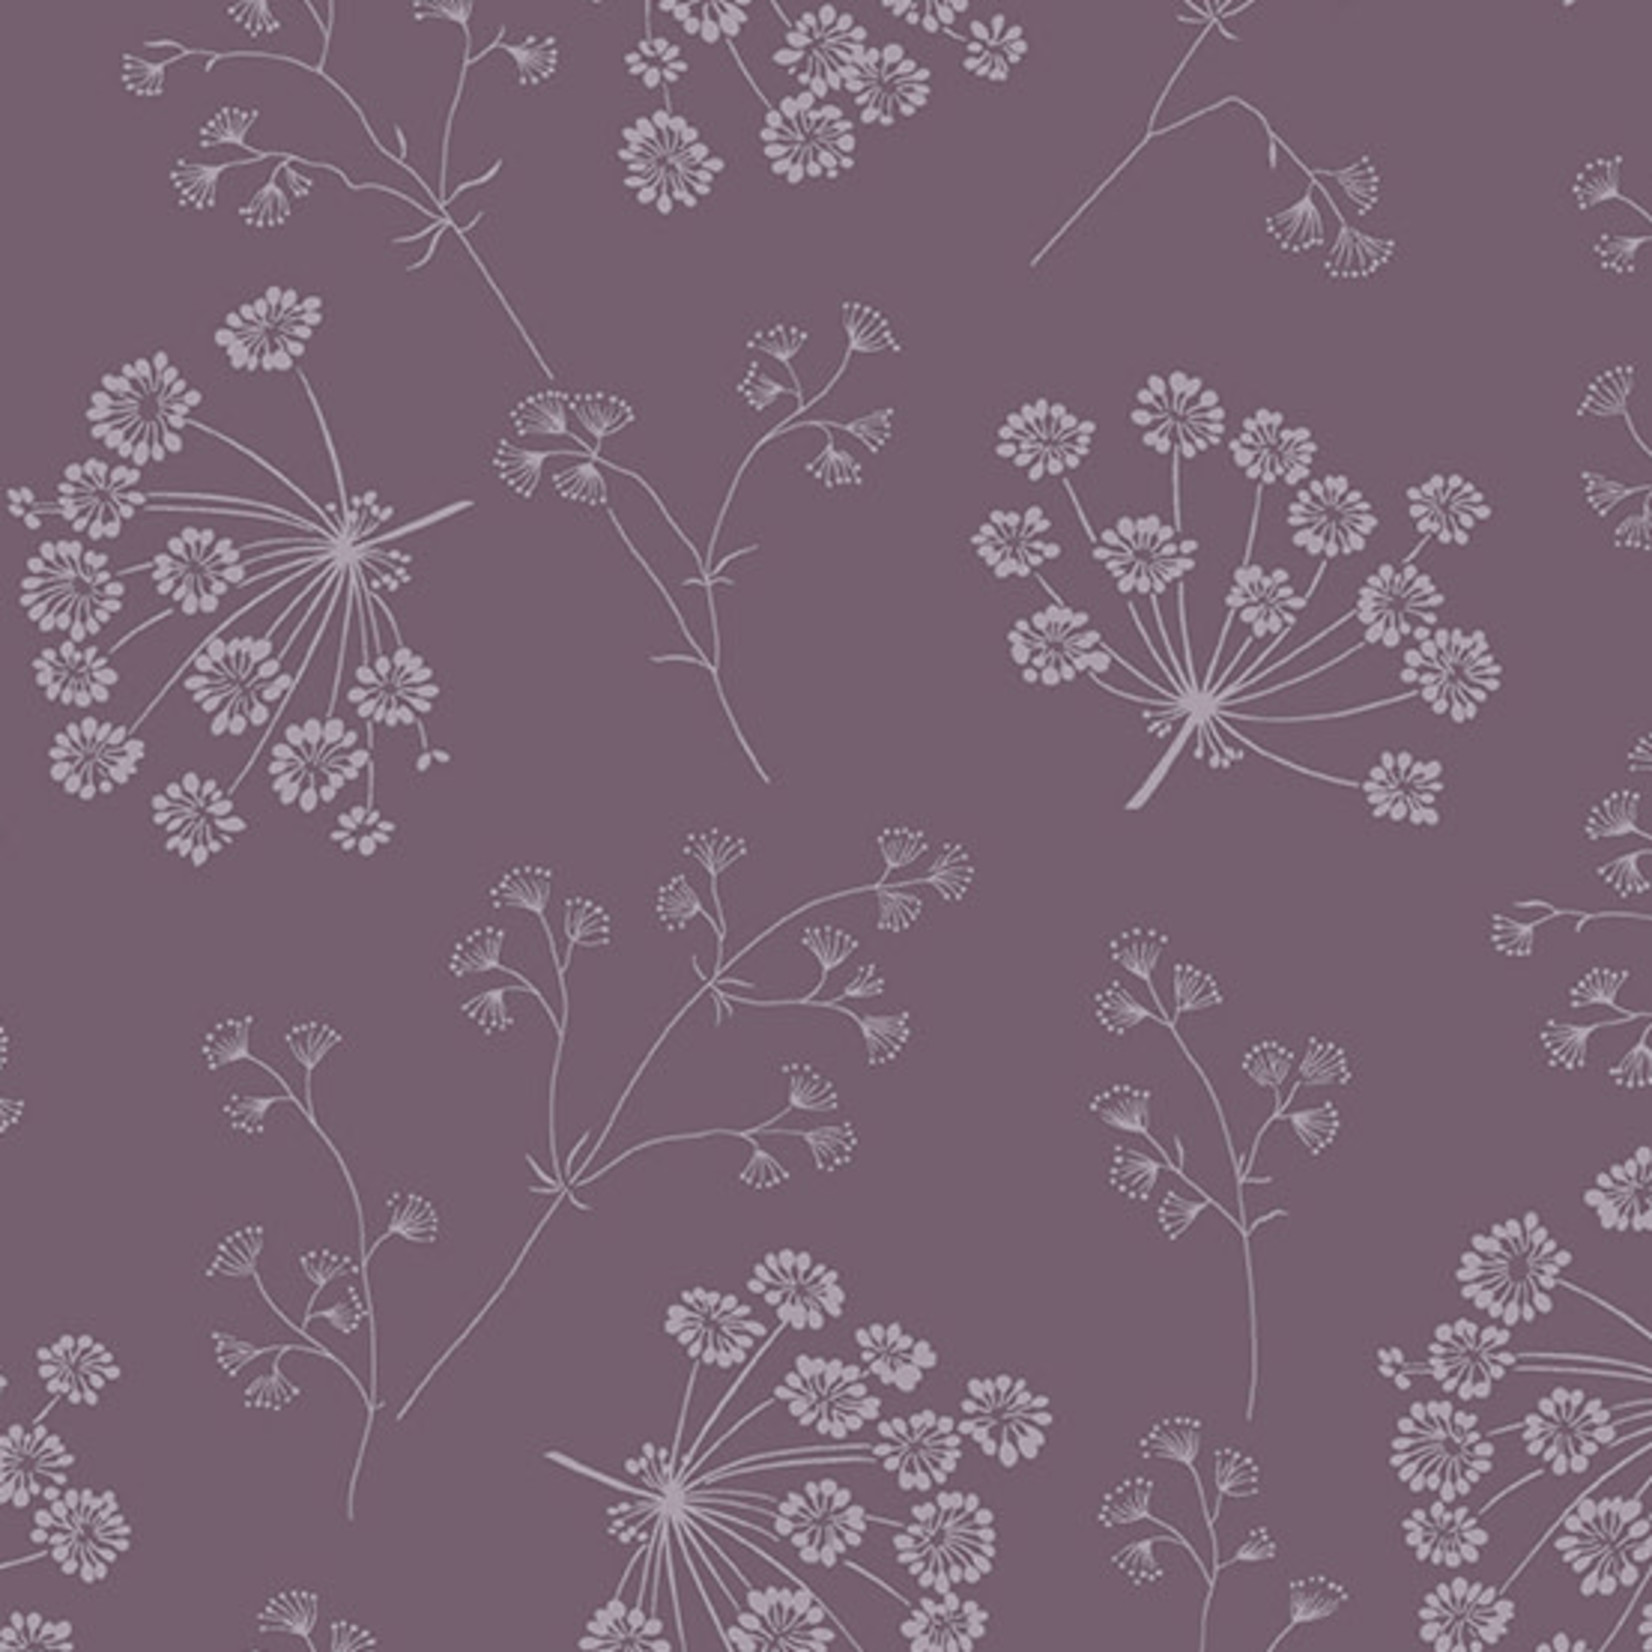 Andover SOLSTICE DRIED FLOWERS, AMETHYST (A-9543-P) PER CM or $20/m